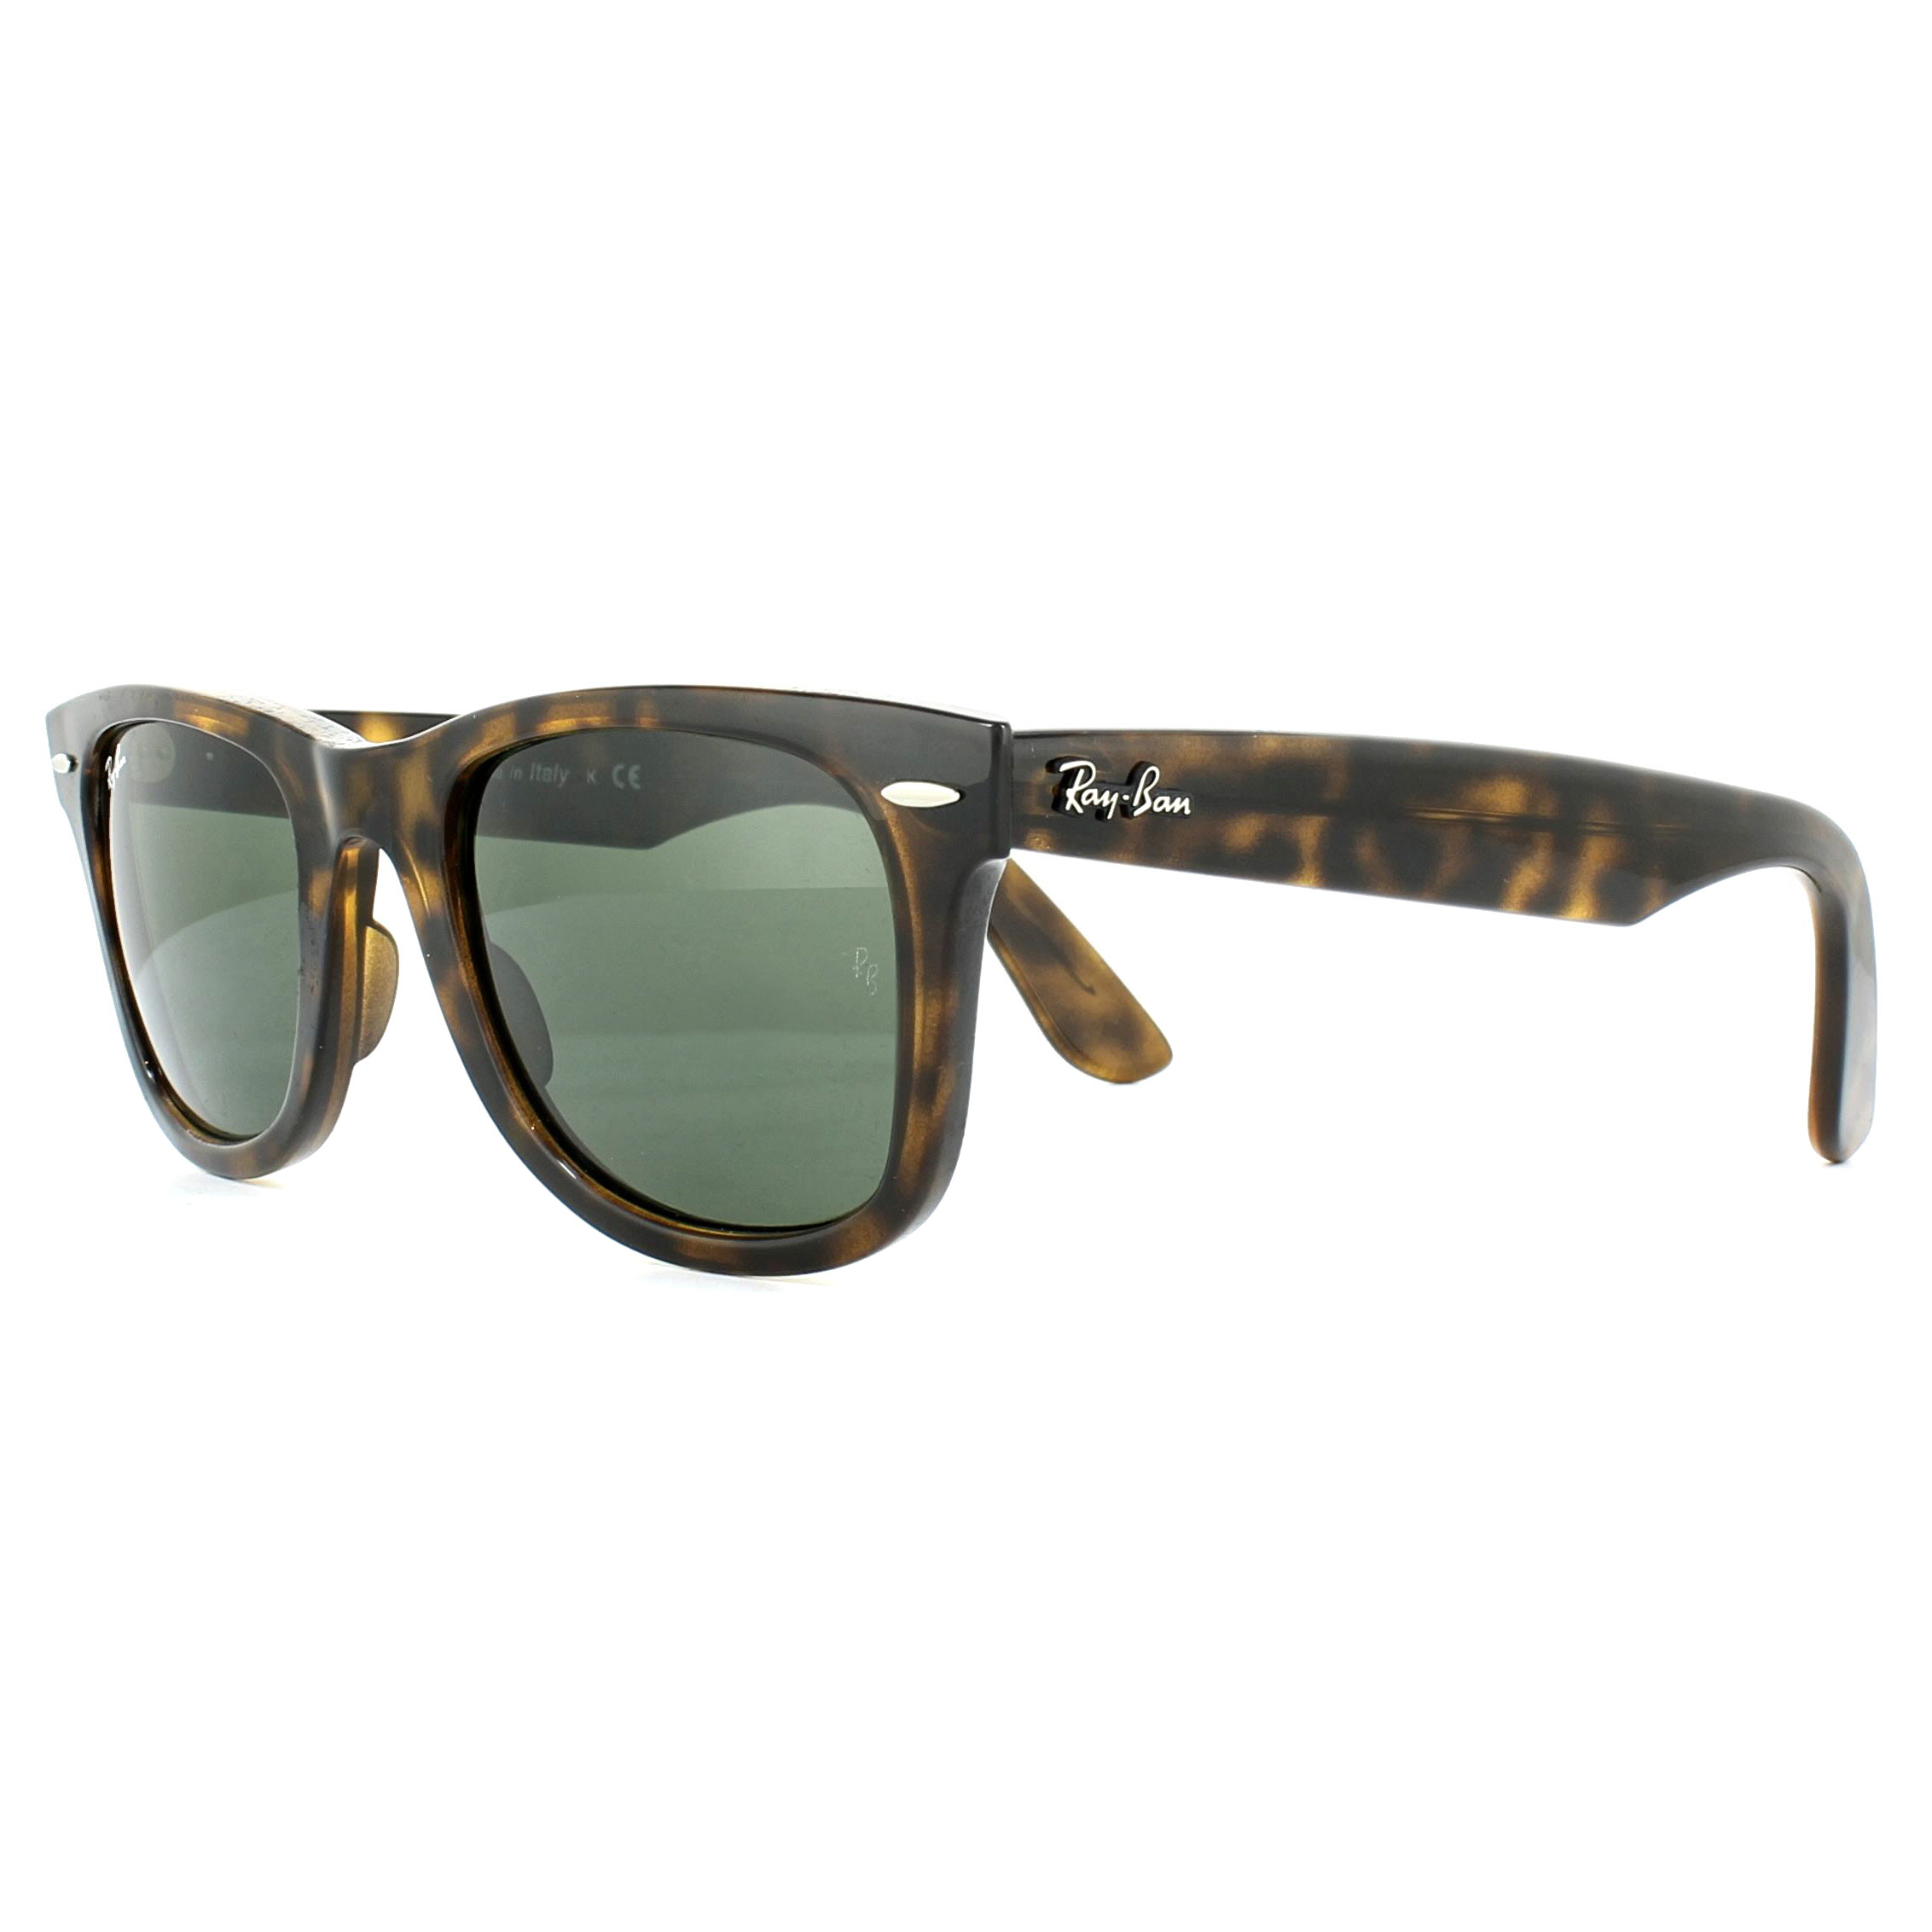 7f0352d1f0c Details about Ray-Ban Sunglasses Wayfarer Ease RB4340 710 Tortoise Green  G-15